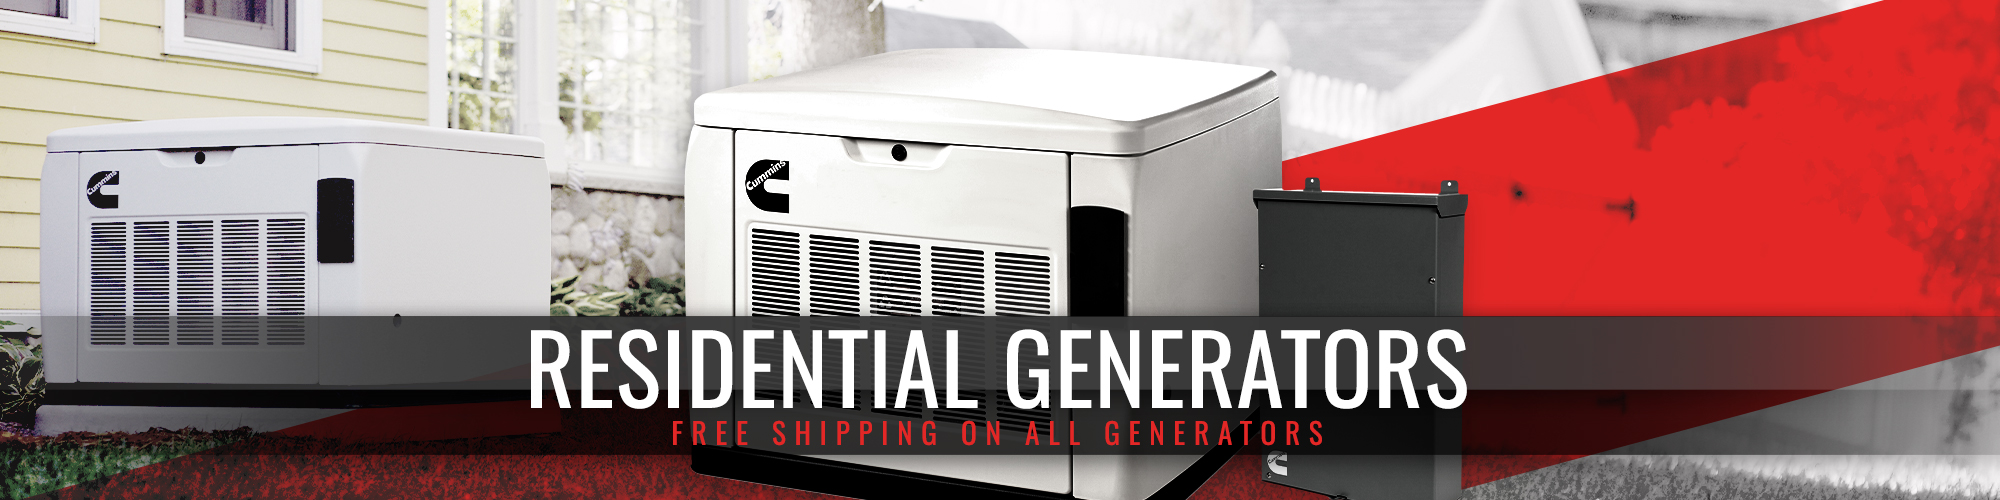 Residential Generators